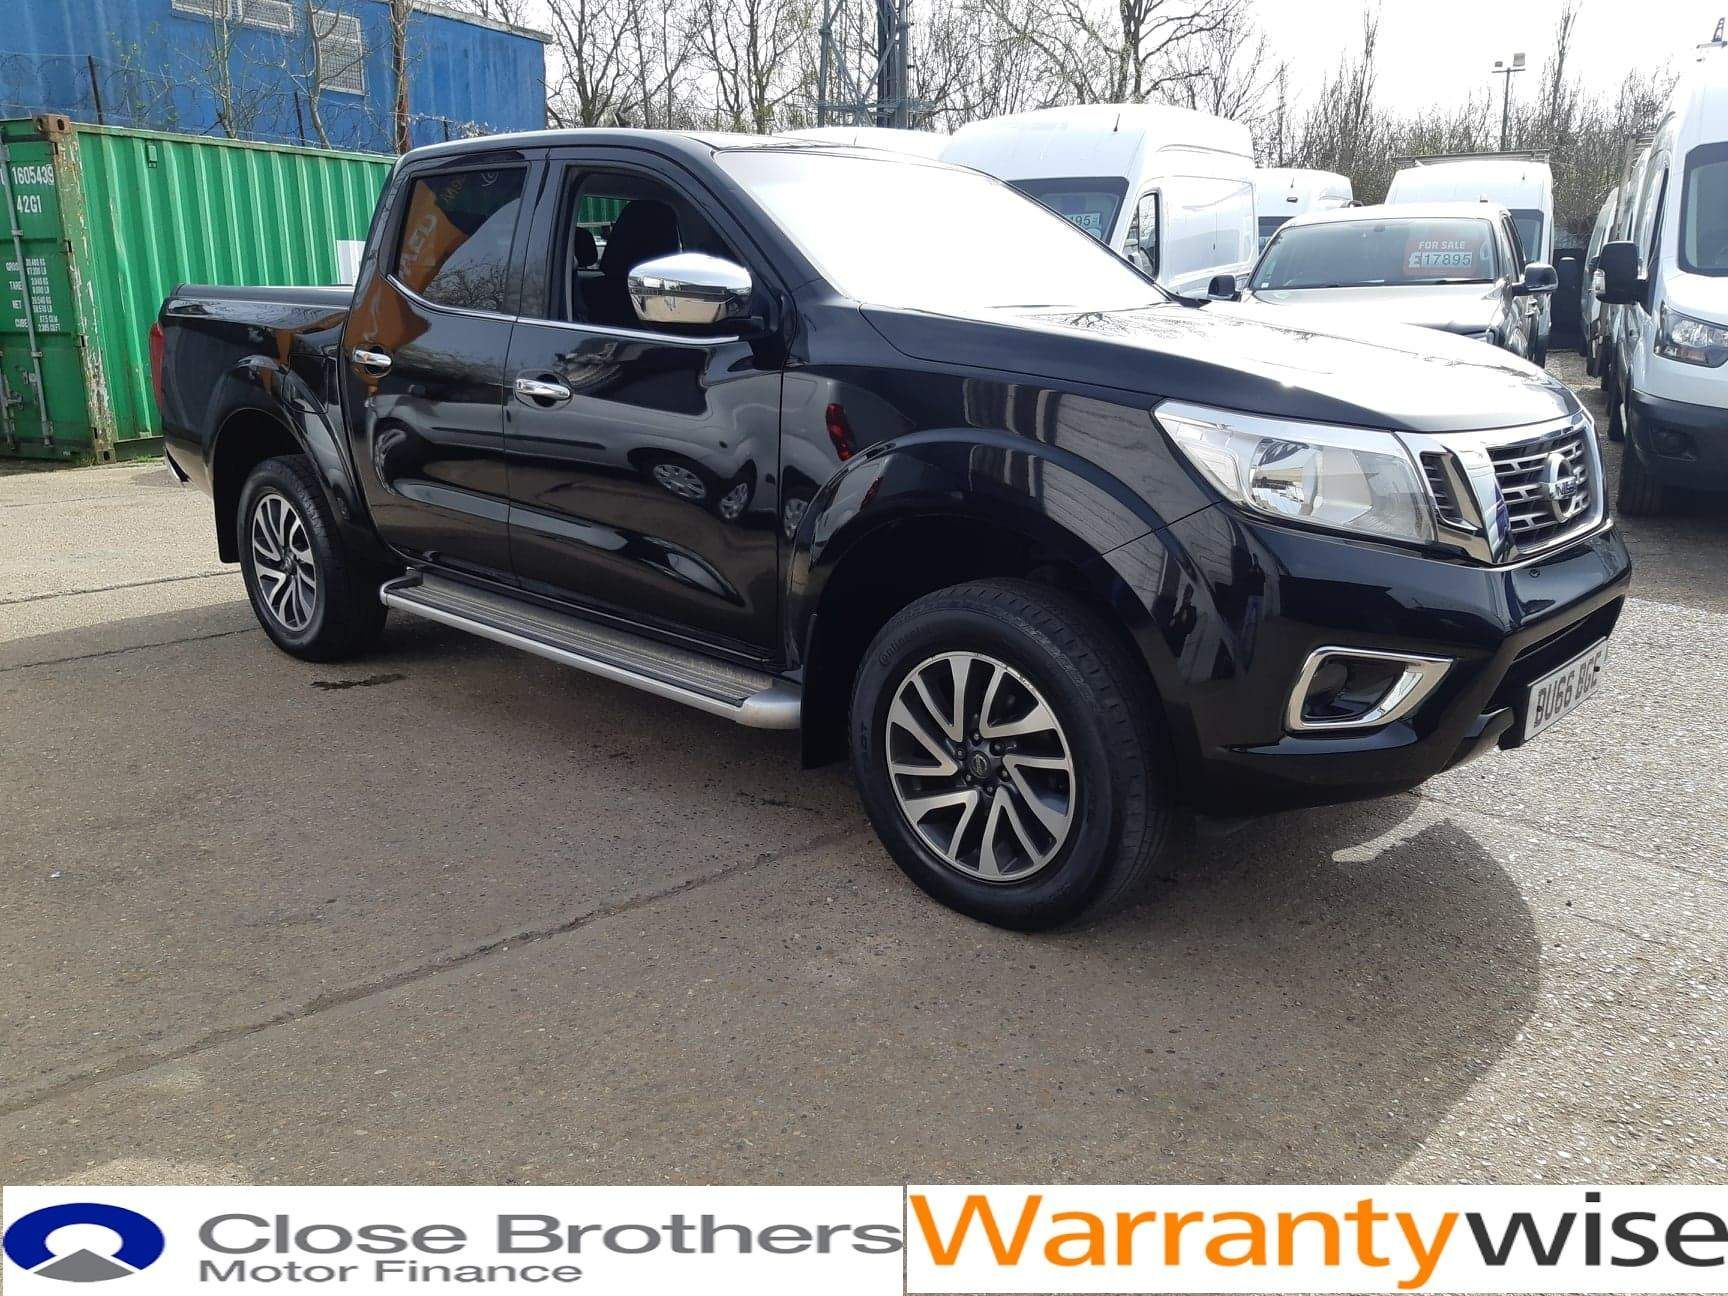 Nissan Navara 2.3 dCi N-Connecta Double Cab Pickup 4WD (s/s) 4dr